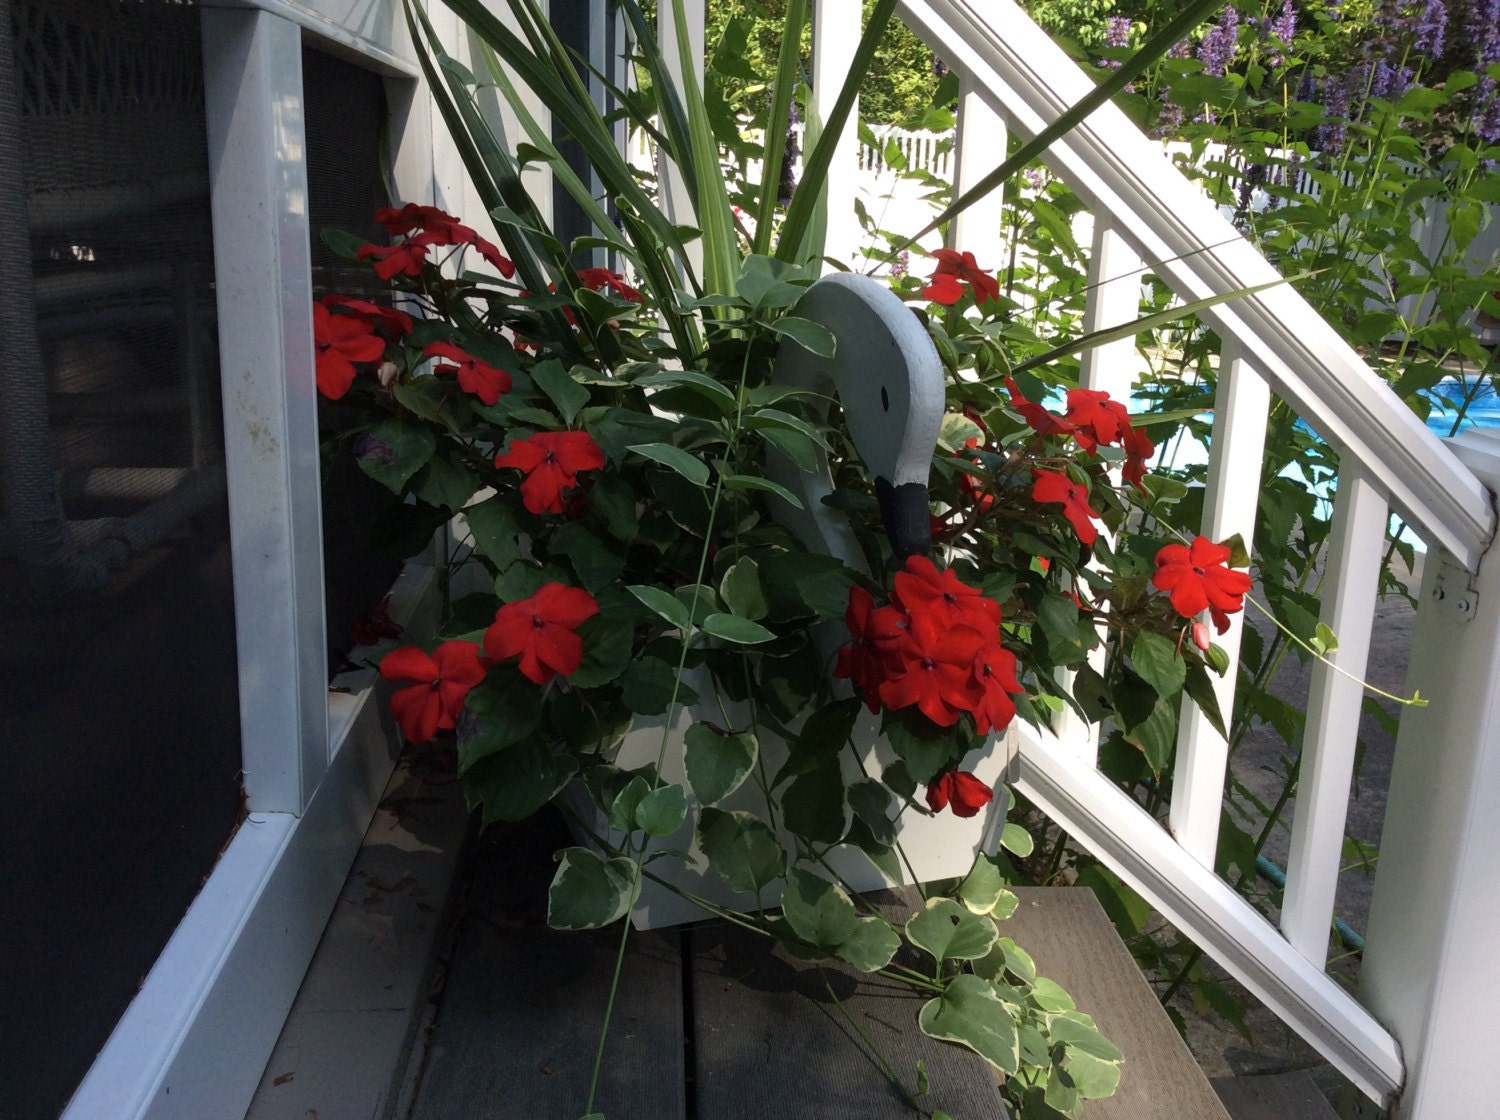 Swan planters by gardenswans on etsy - Plastic swan planter ...